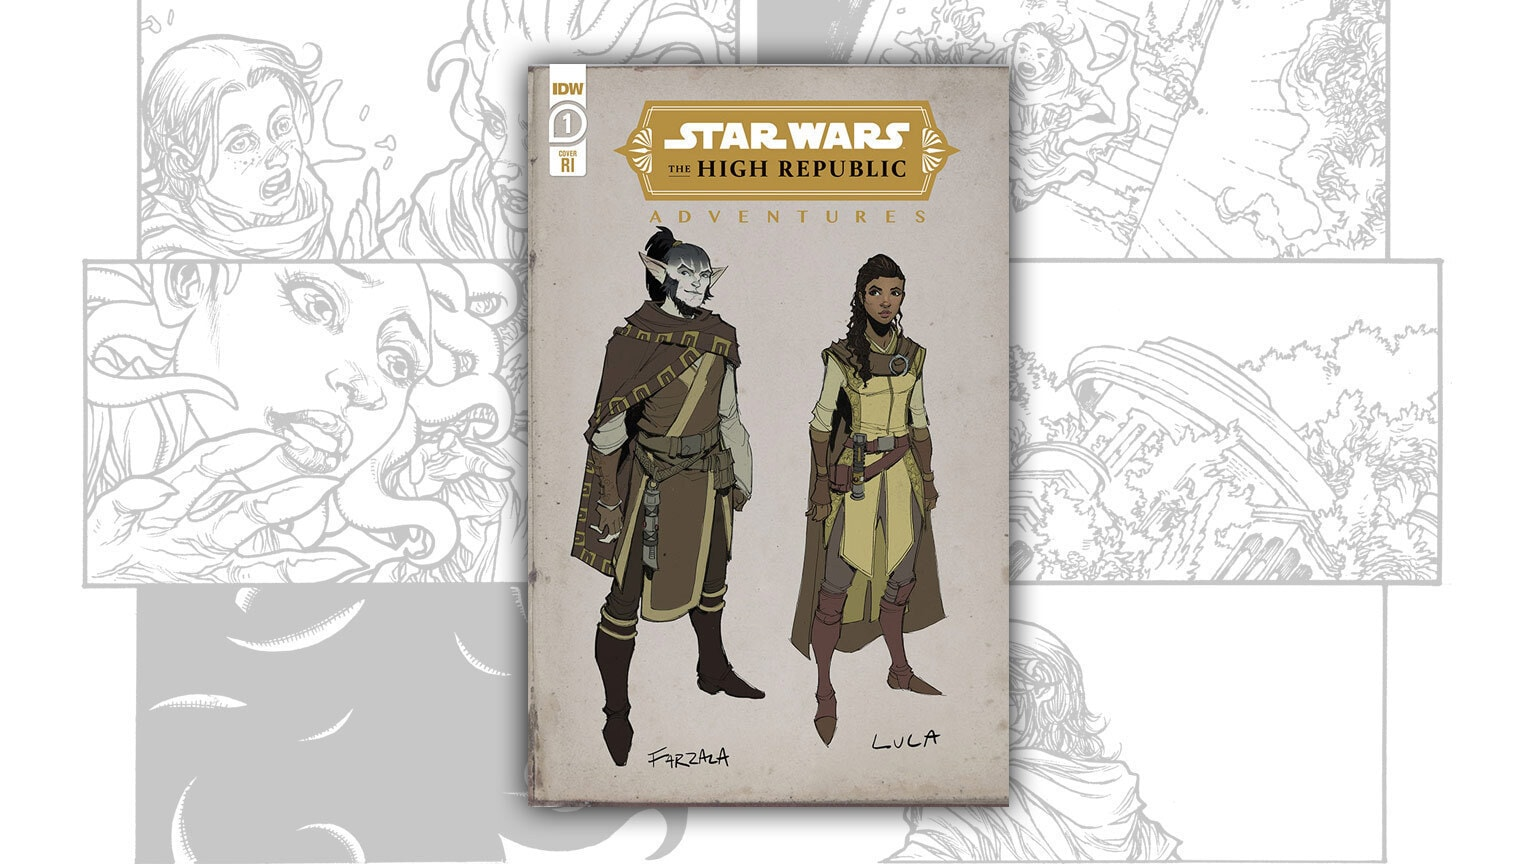 Yoda Returns with Another Lesson in IDW's Star Wars: The High Republic Adventures